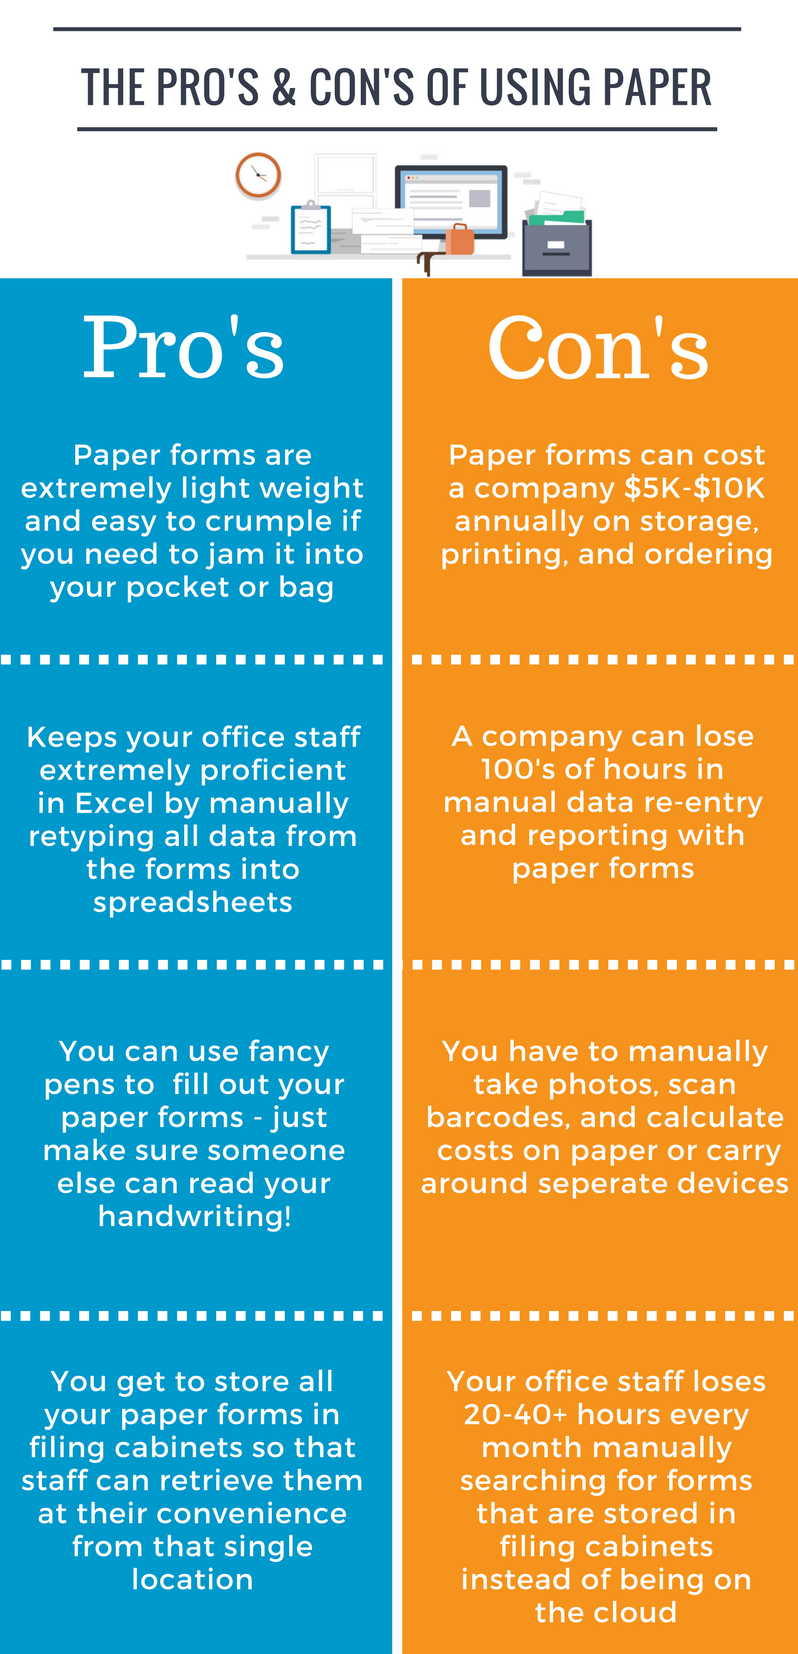 Pros and Cons of Using Paper